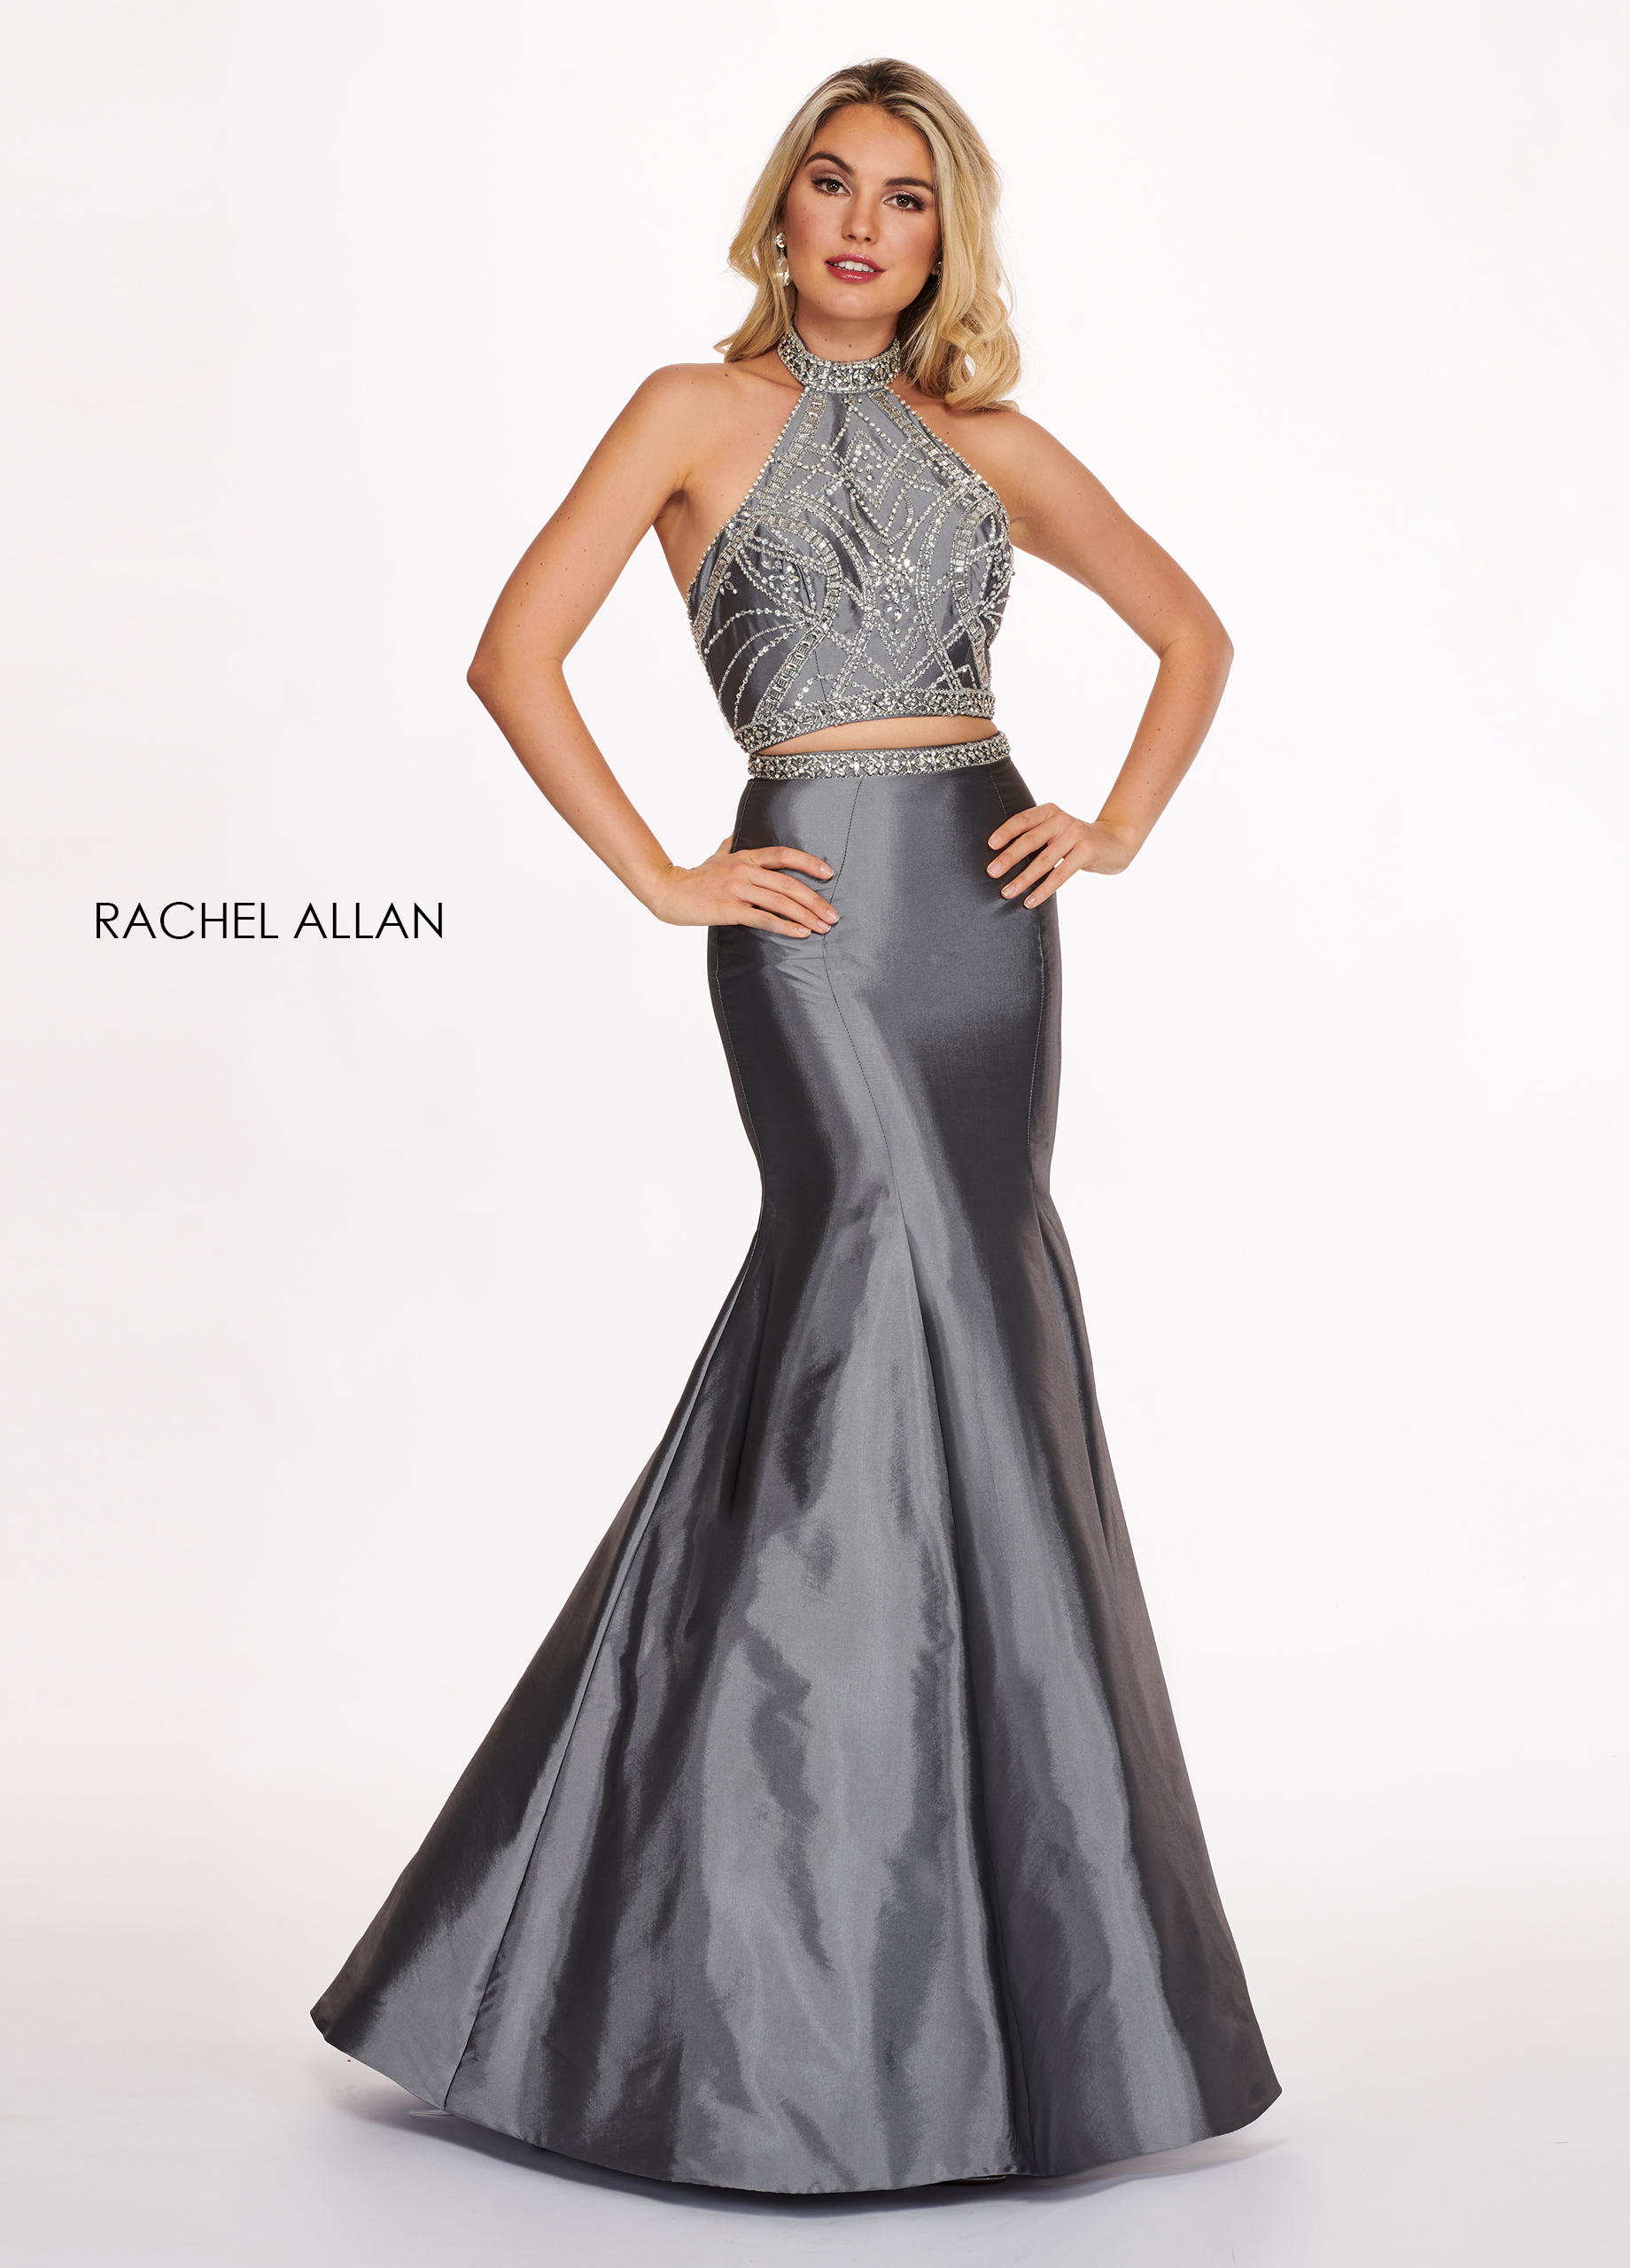 Choker Two-Piece Prom Dresses in Grey Color